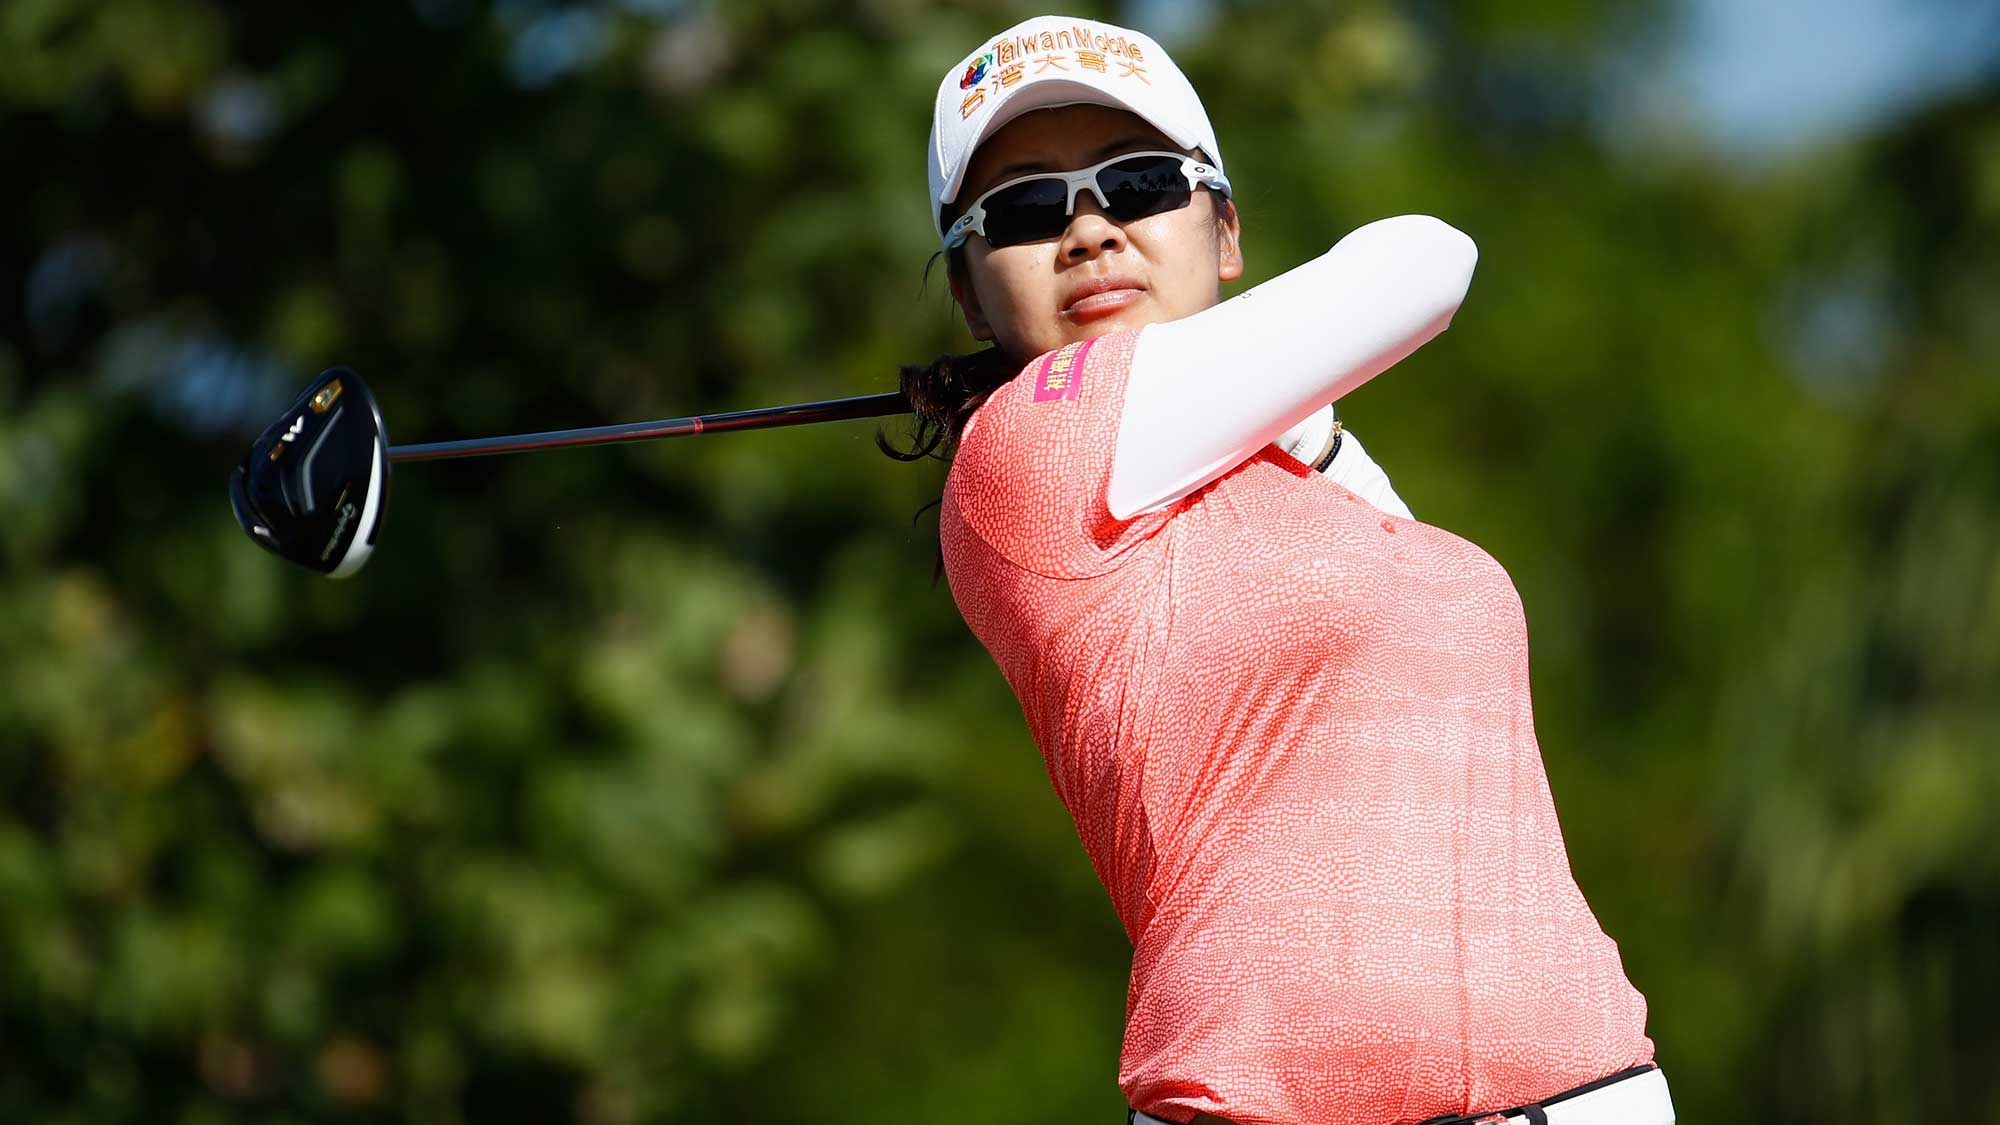 Wei-Ling Hsu of Taiwan hits her tee shot on the 4th hole during the final round of the Pure Silk Bahamas LPGA Classic